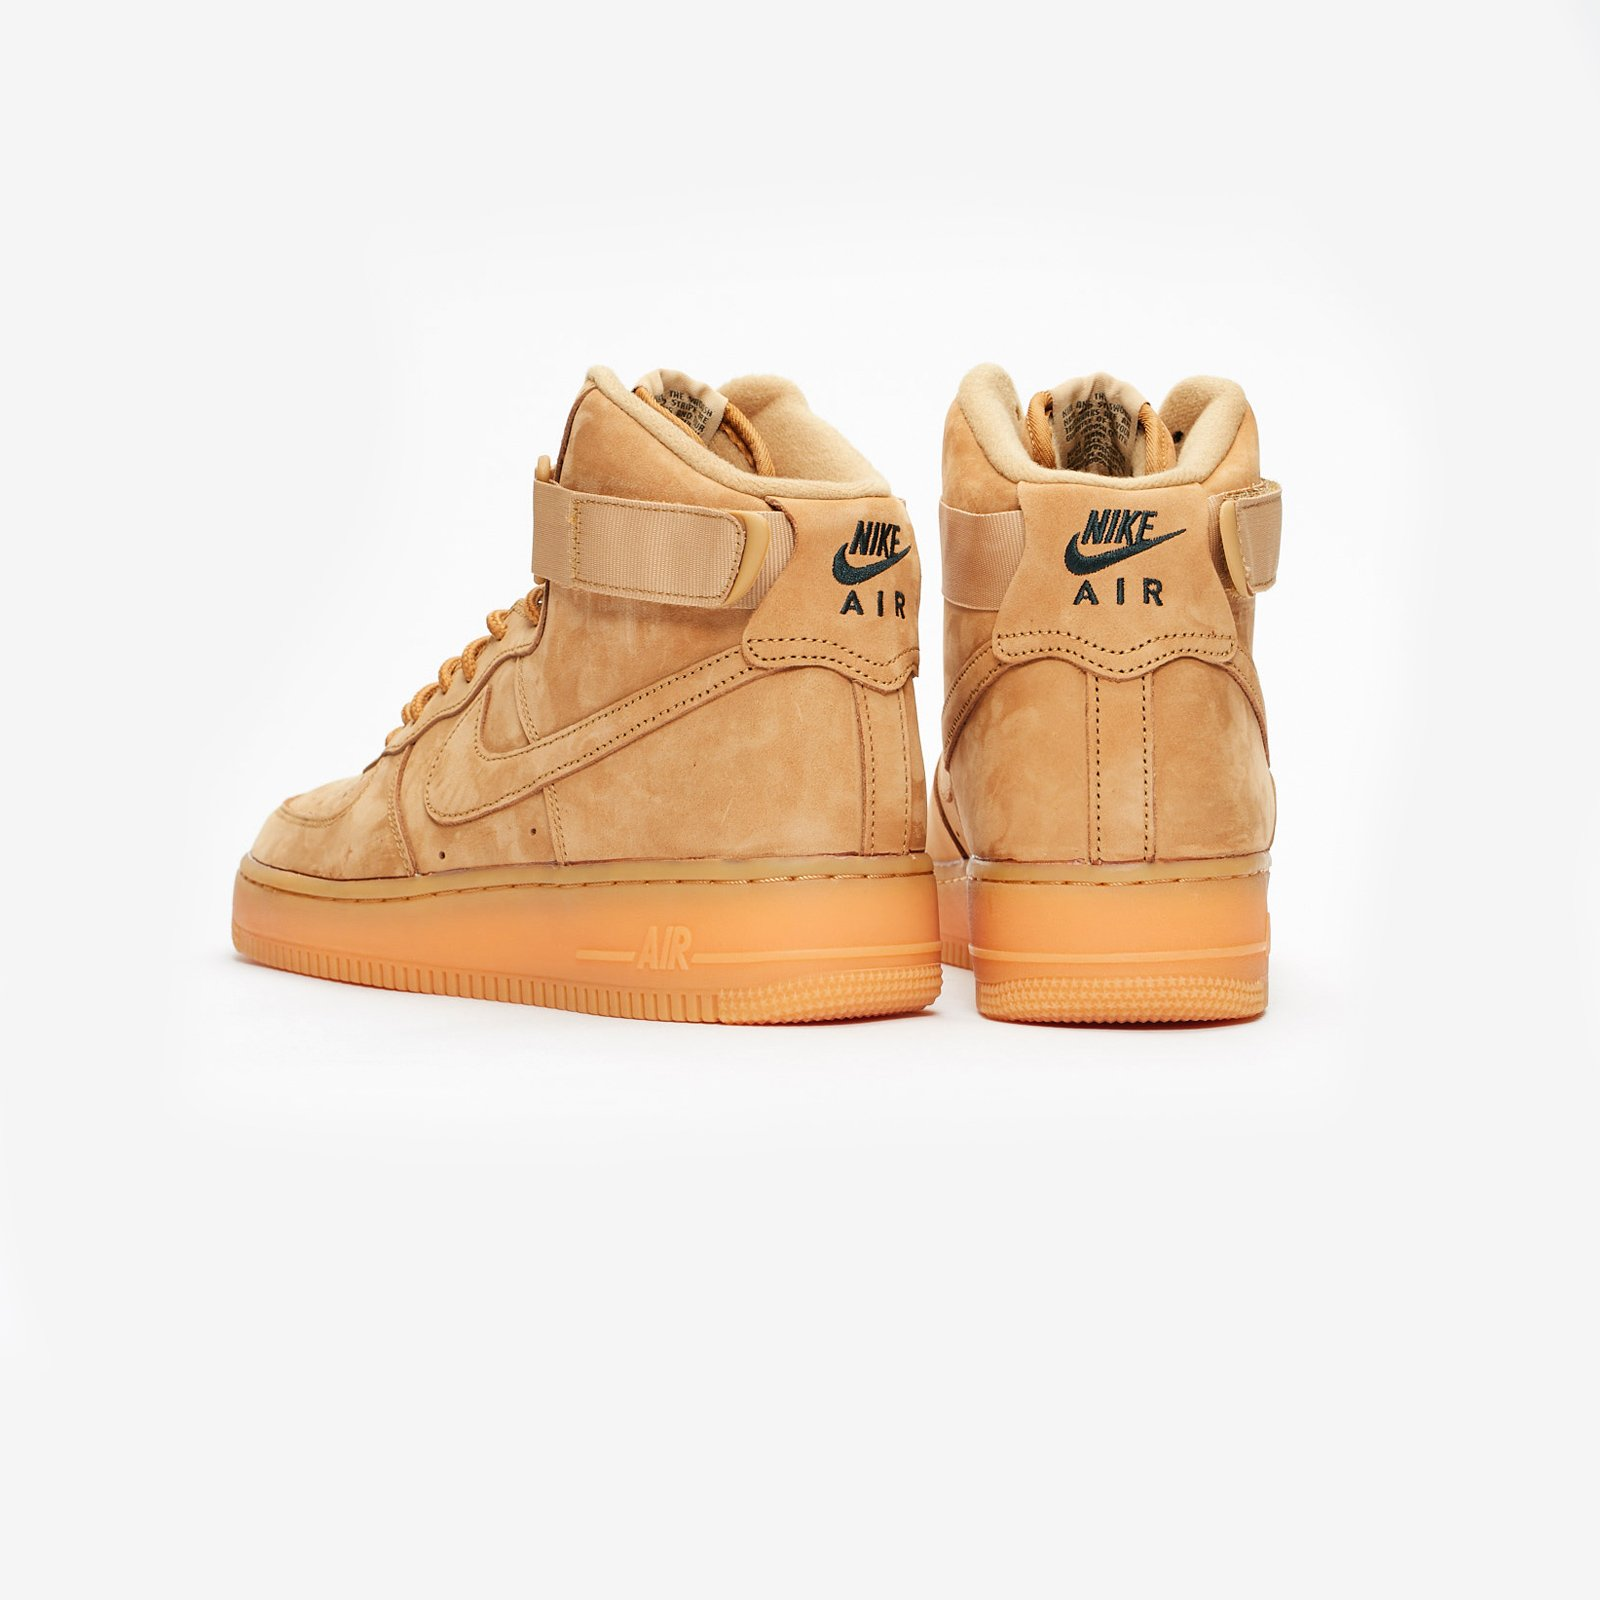 the best attitude d4f88 89ce8 Nike Air Force 1 High 07 LV8 WB - 882096-200 - Sneakersnstuff   sneakers    streetwear online since 1999